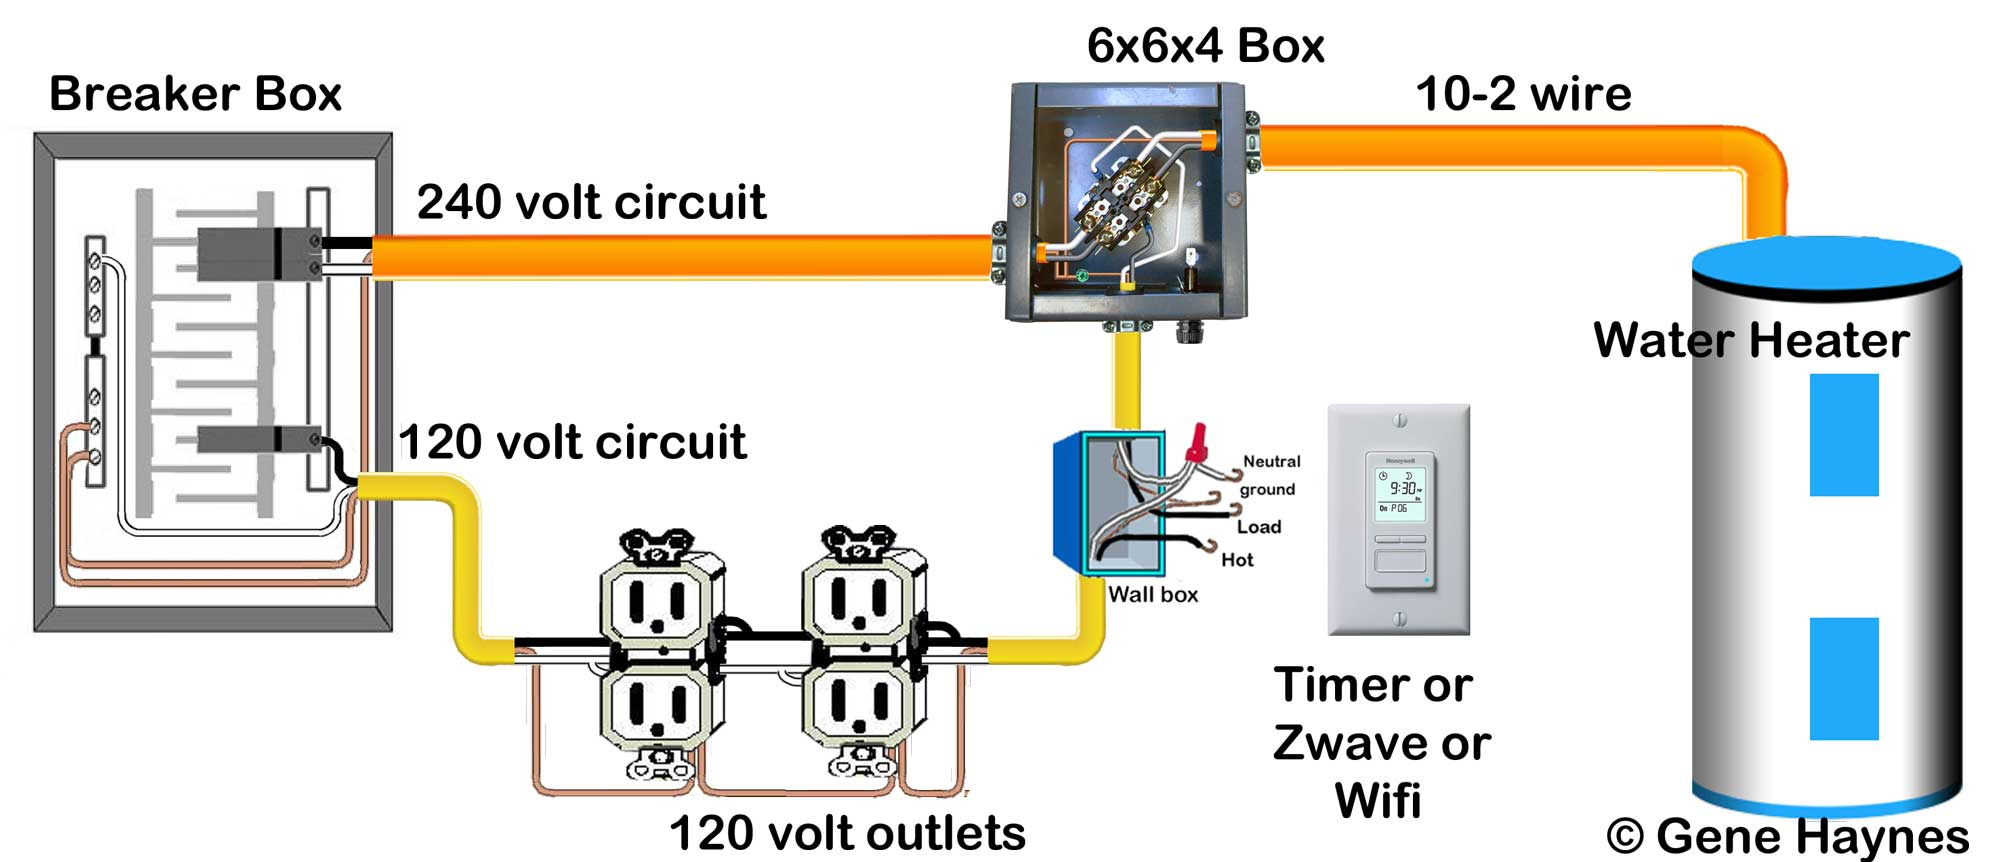 240 volt circuits can be controlled by 120V using a contactor. This lets  you install timer or home automation device to any 240 volt circuit.